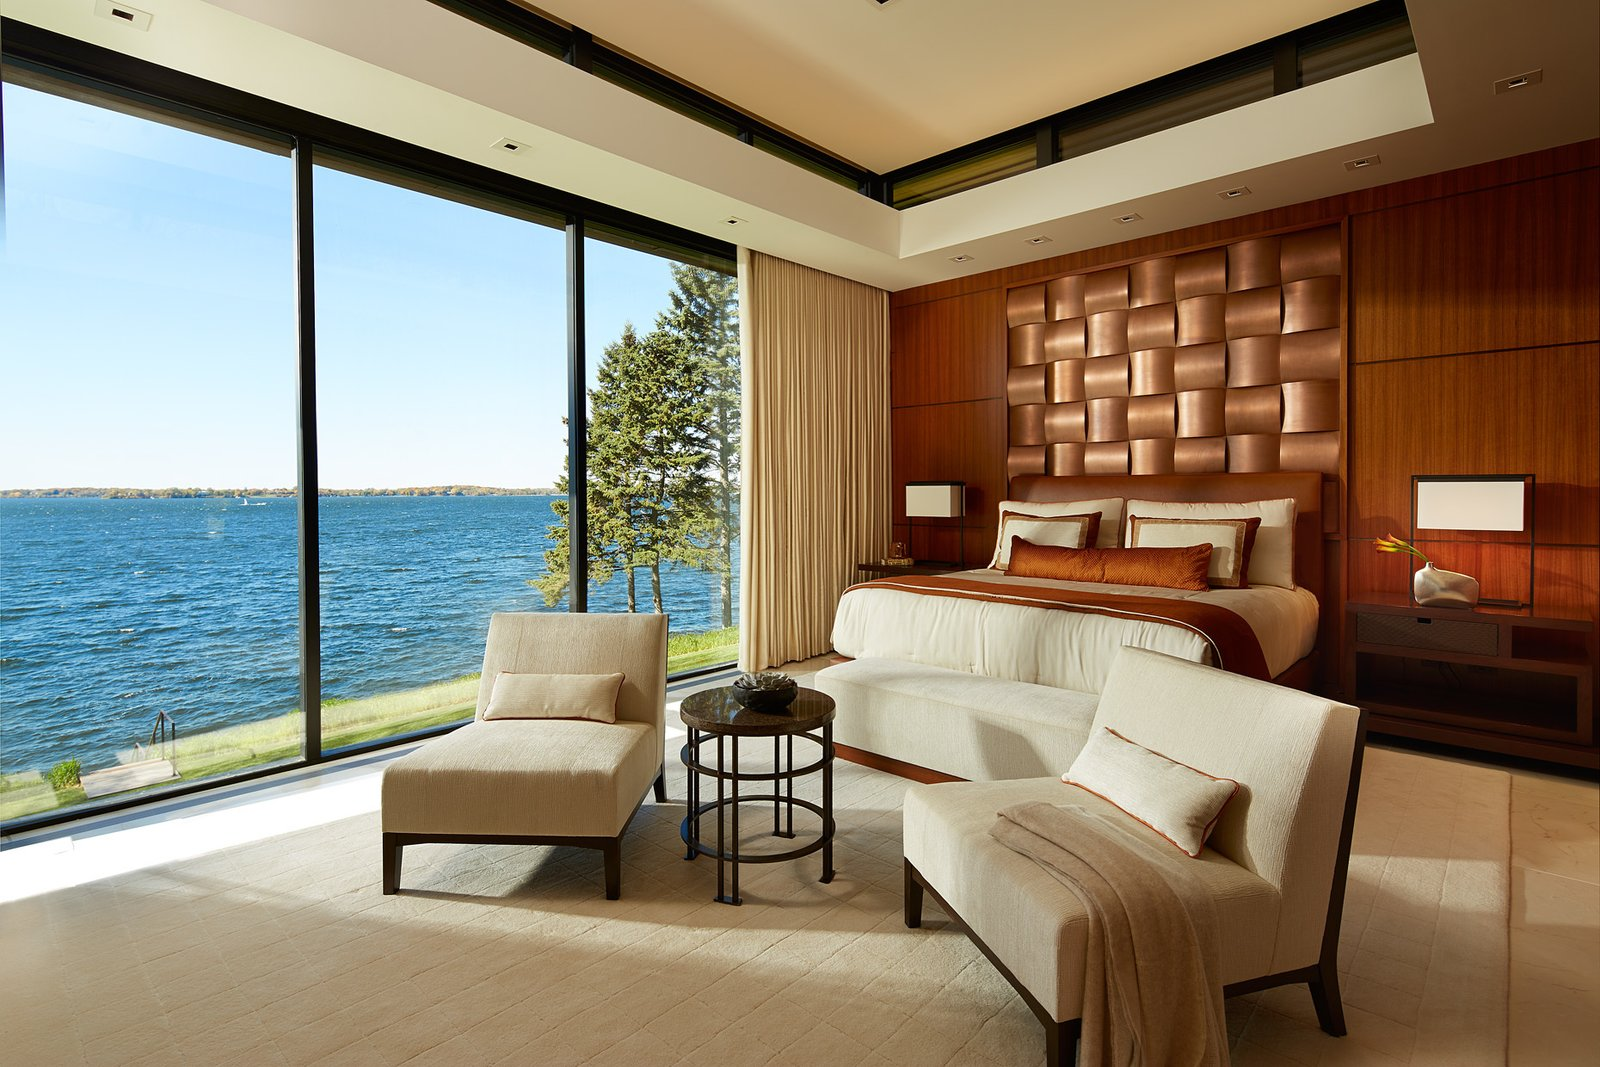 Bedroom, Bed, Chair, Night Stands, Recessed Lighting, Rug Floor, and Table Lighting  Shoreline Residence by PKA Architecture